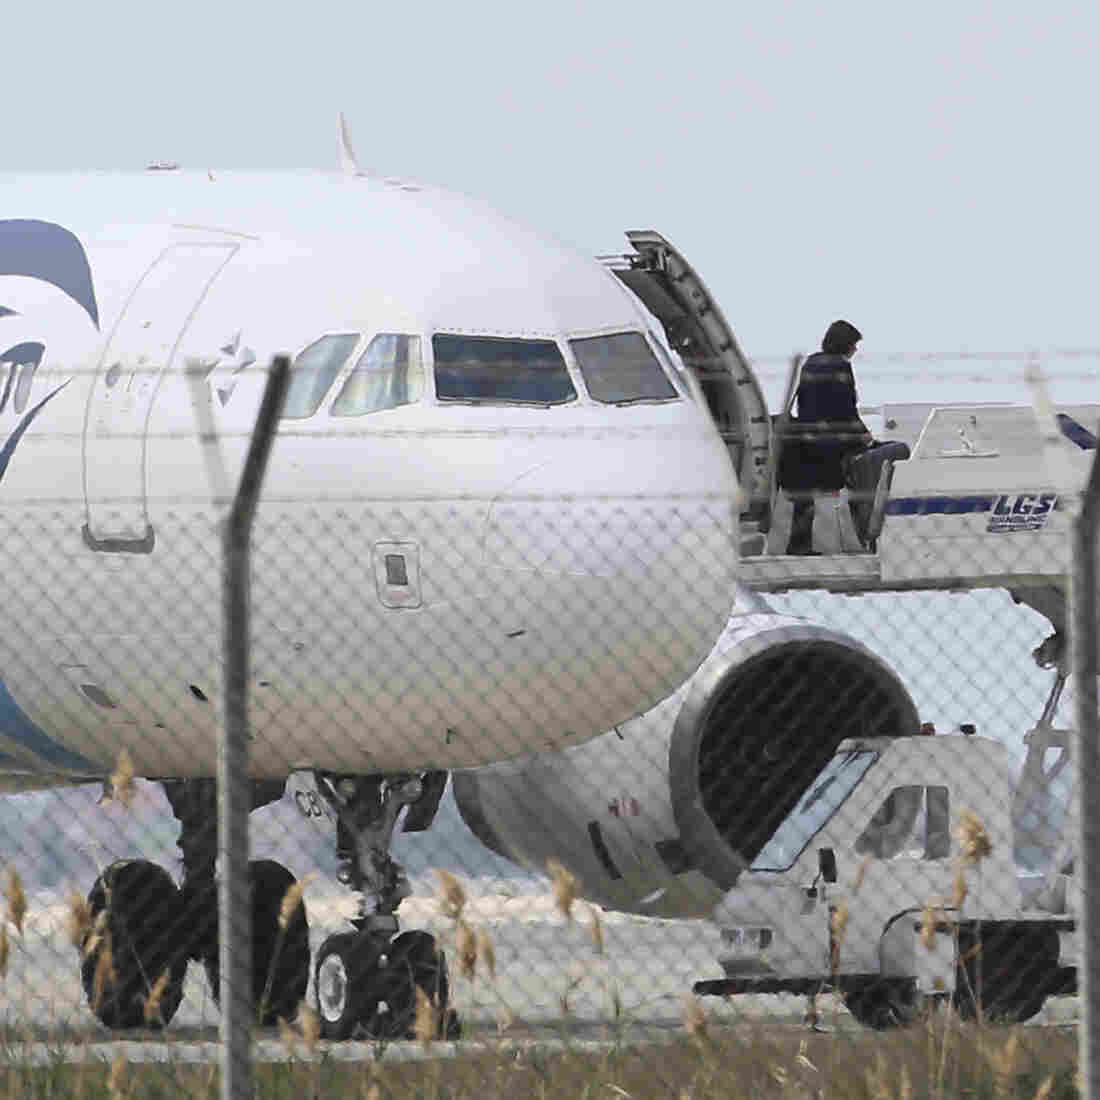 EgyptAir Hijacking Standoff Ends With Arrest In Cyprus